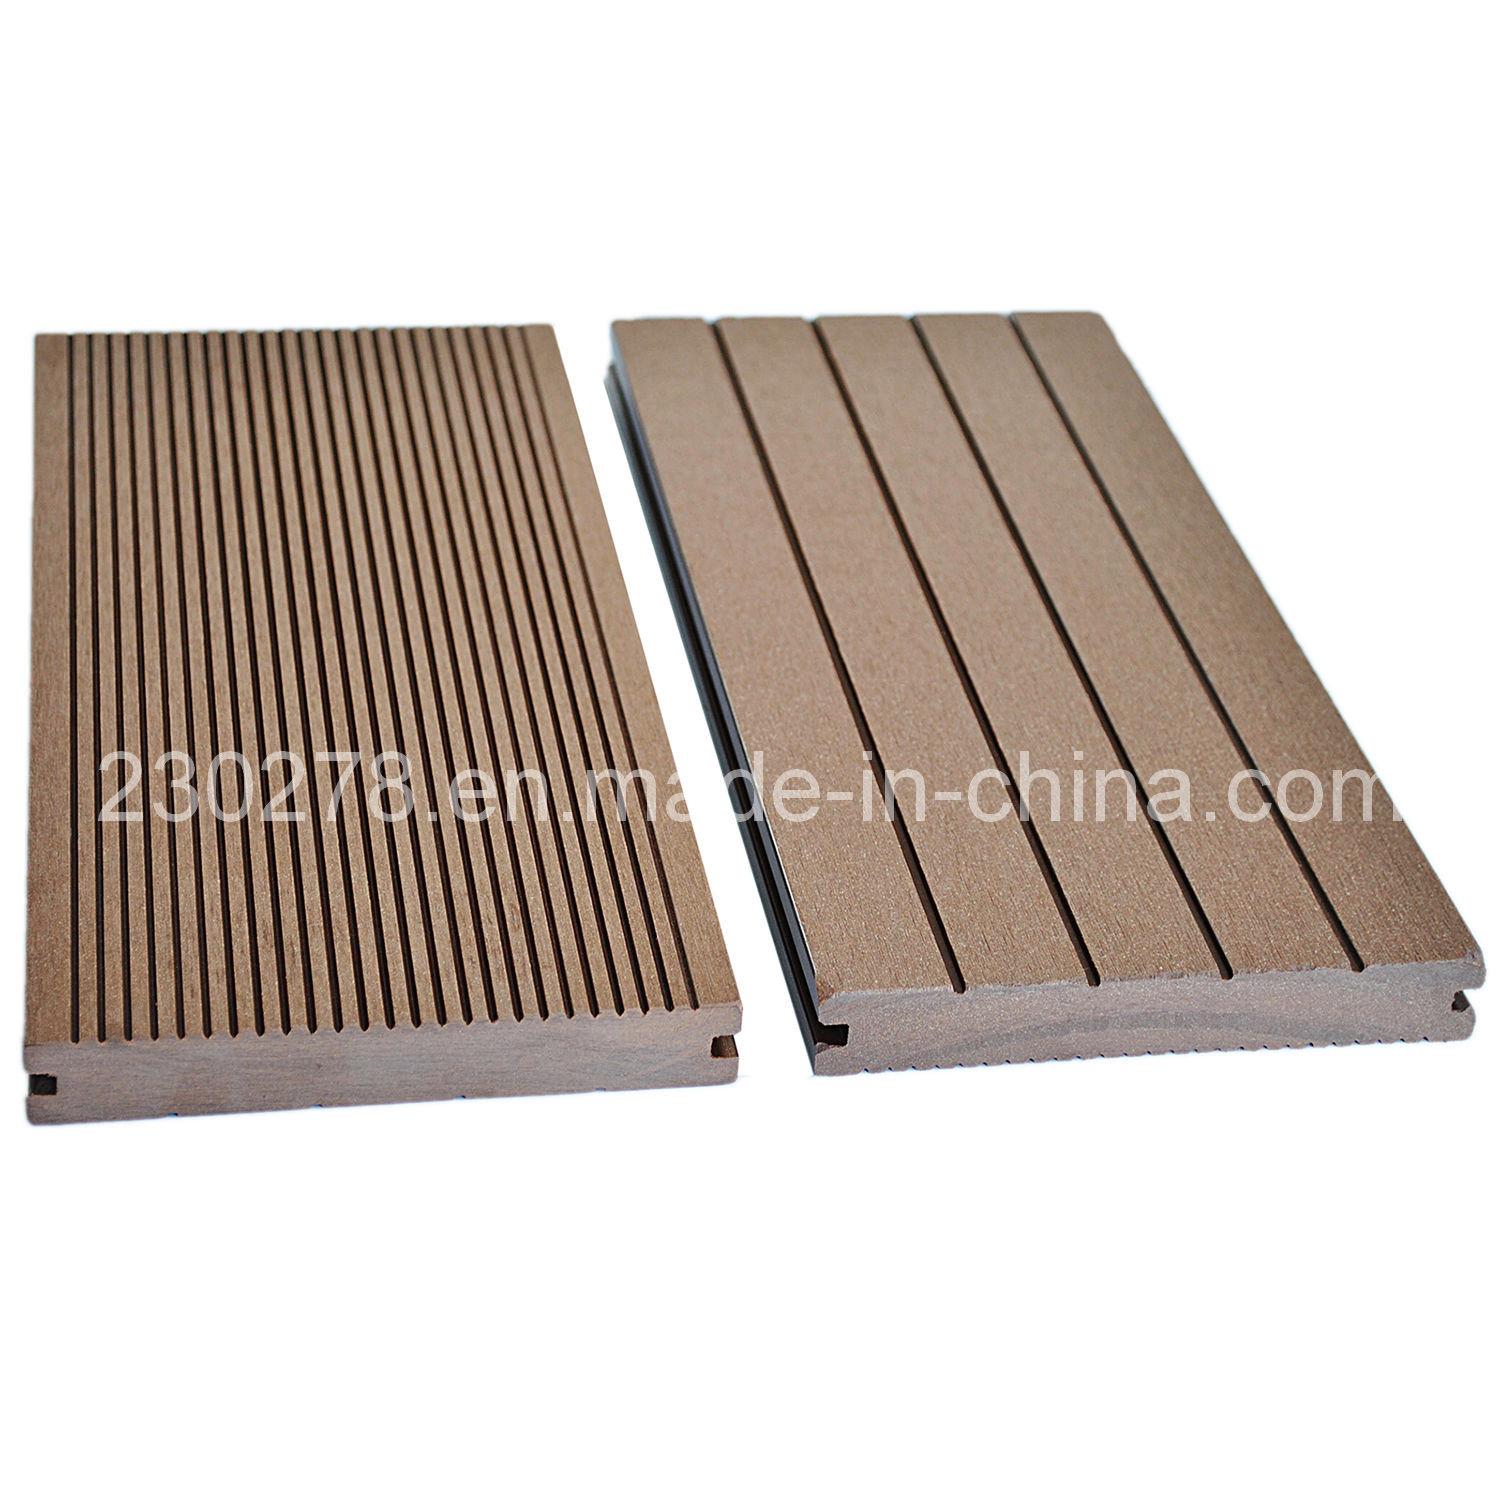 China 140 22 fsc commercial solid wpc decking board for Wpc decking